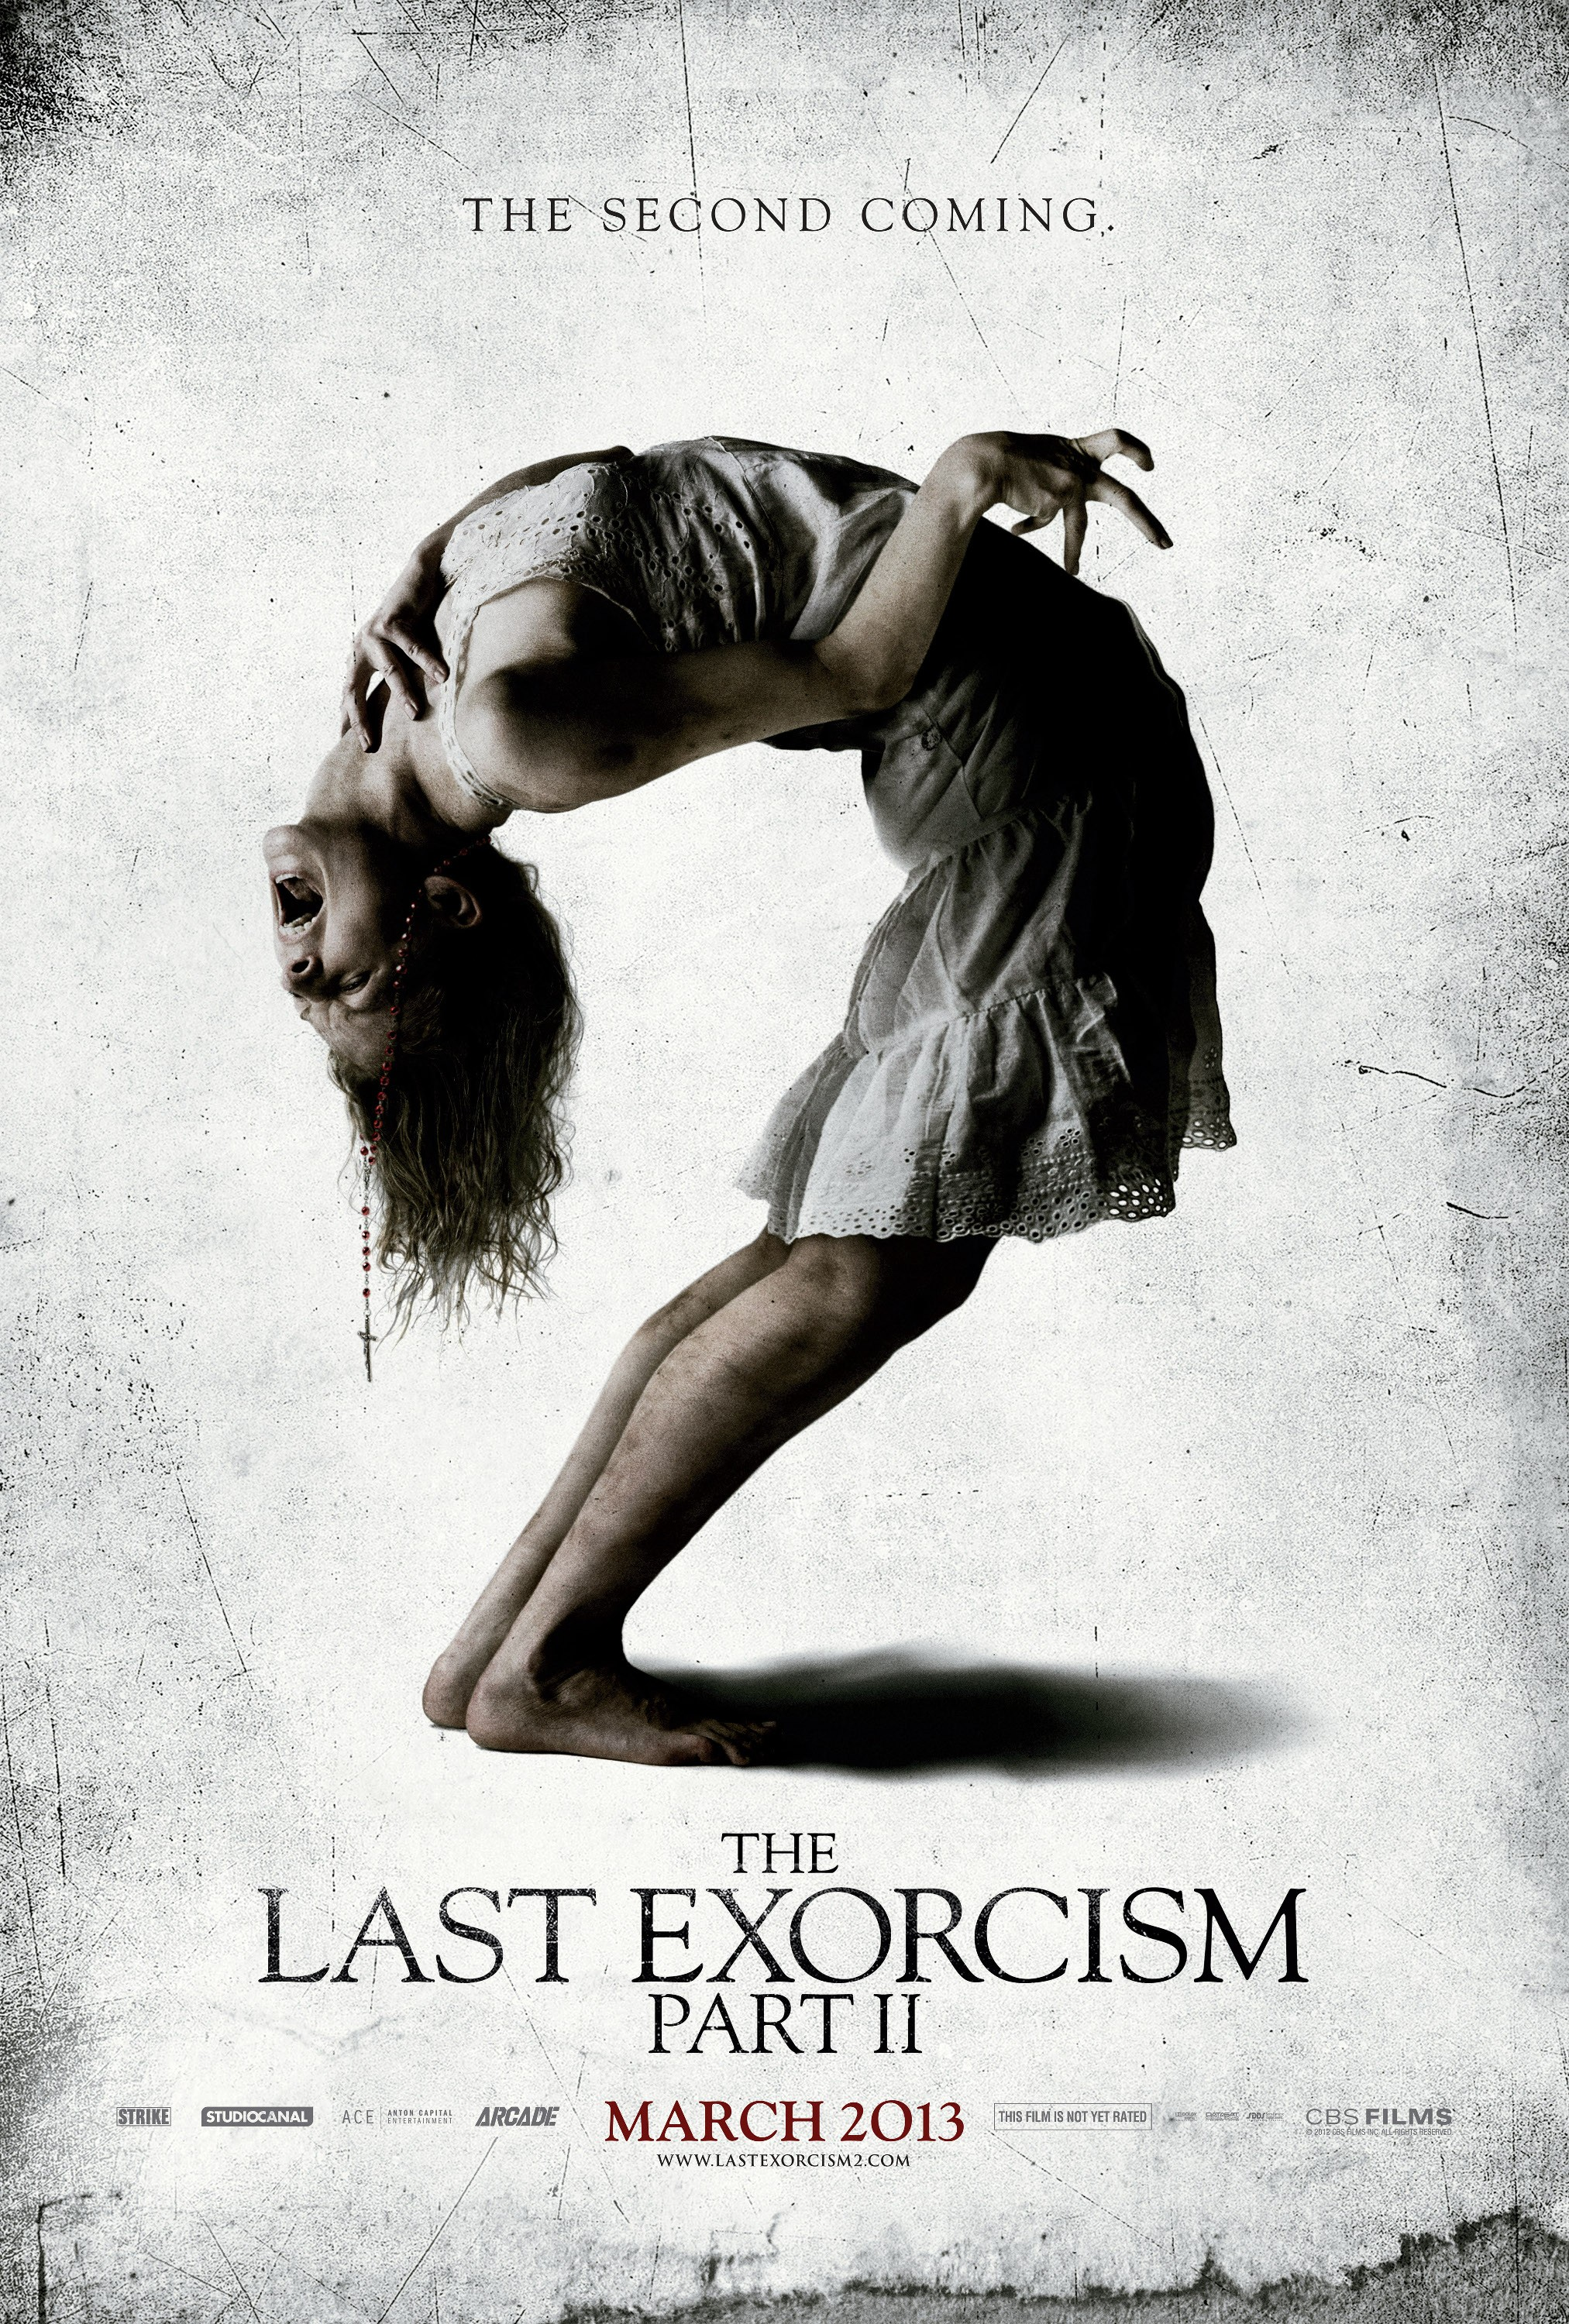 2013-03-01 - The Last Exorcism Part II